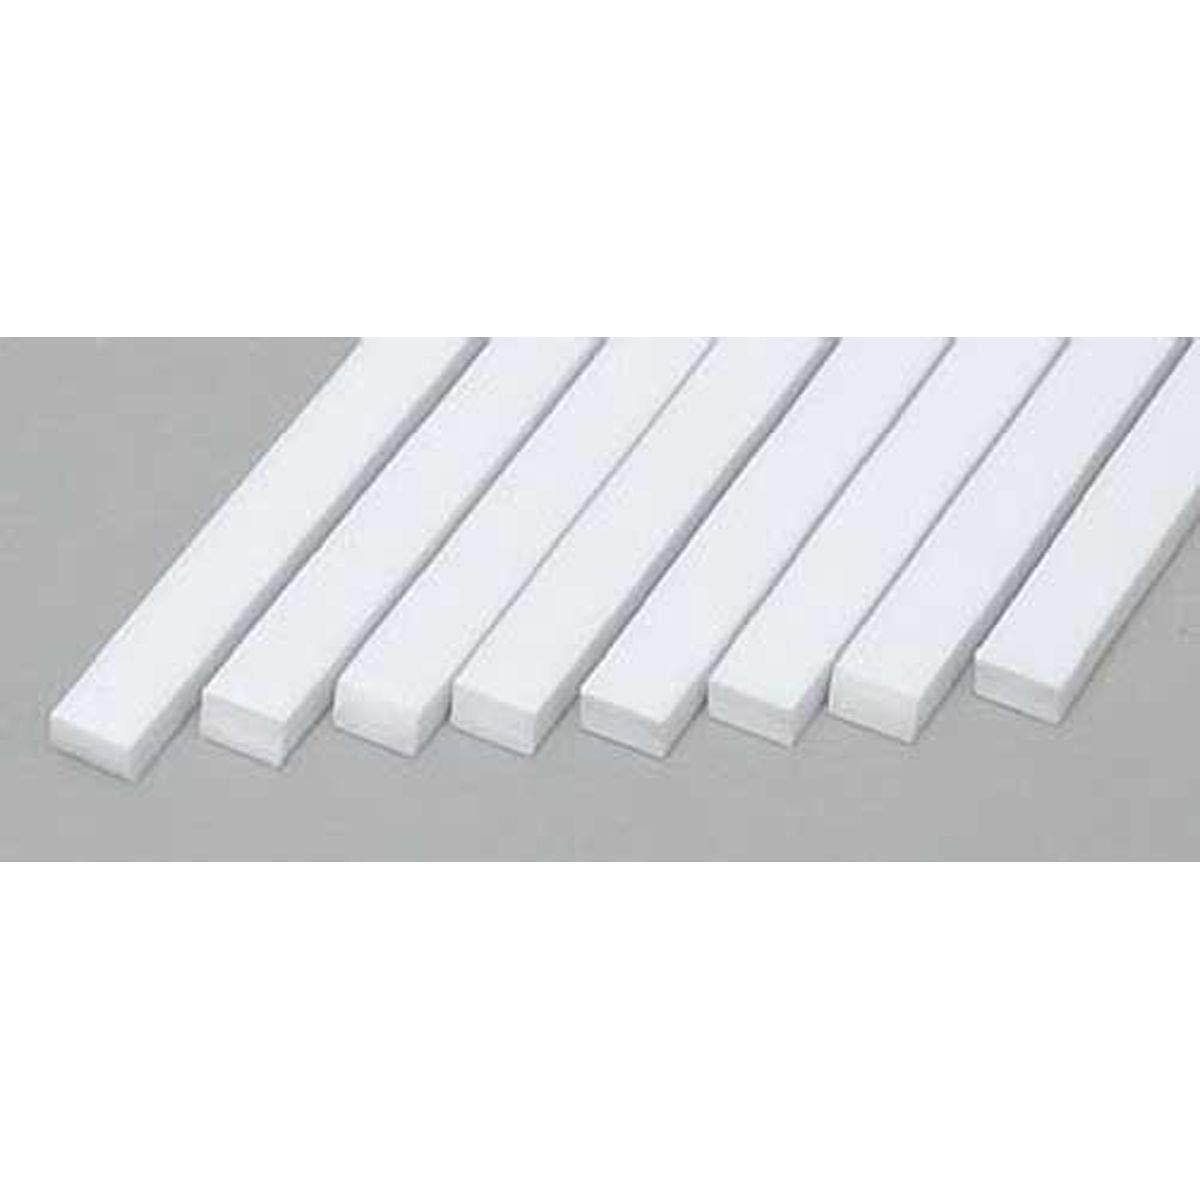 Evergreen PS-166 Strips 2,0 x 3,2 mm